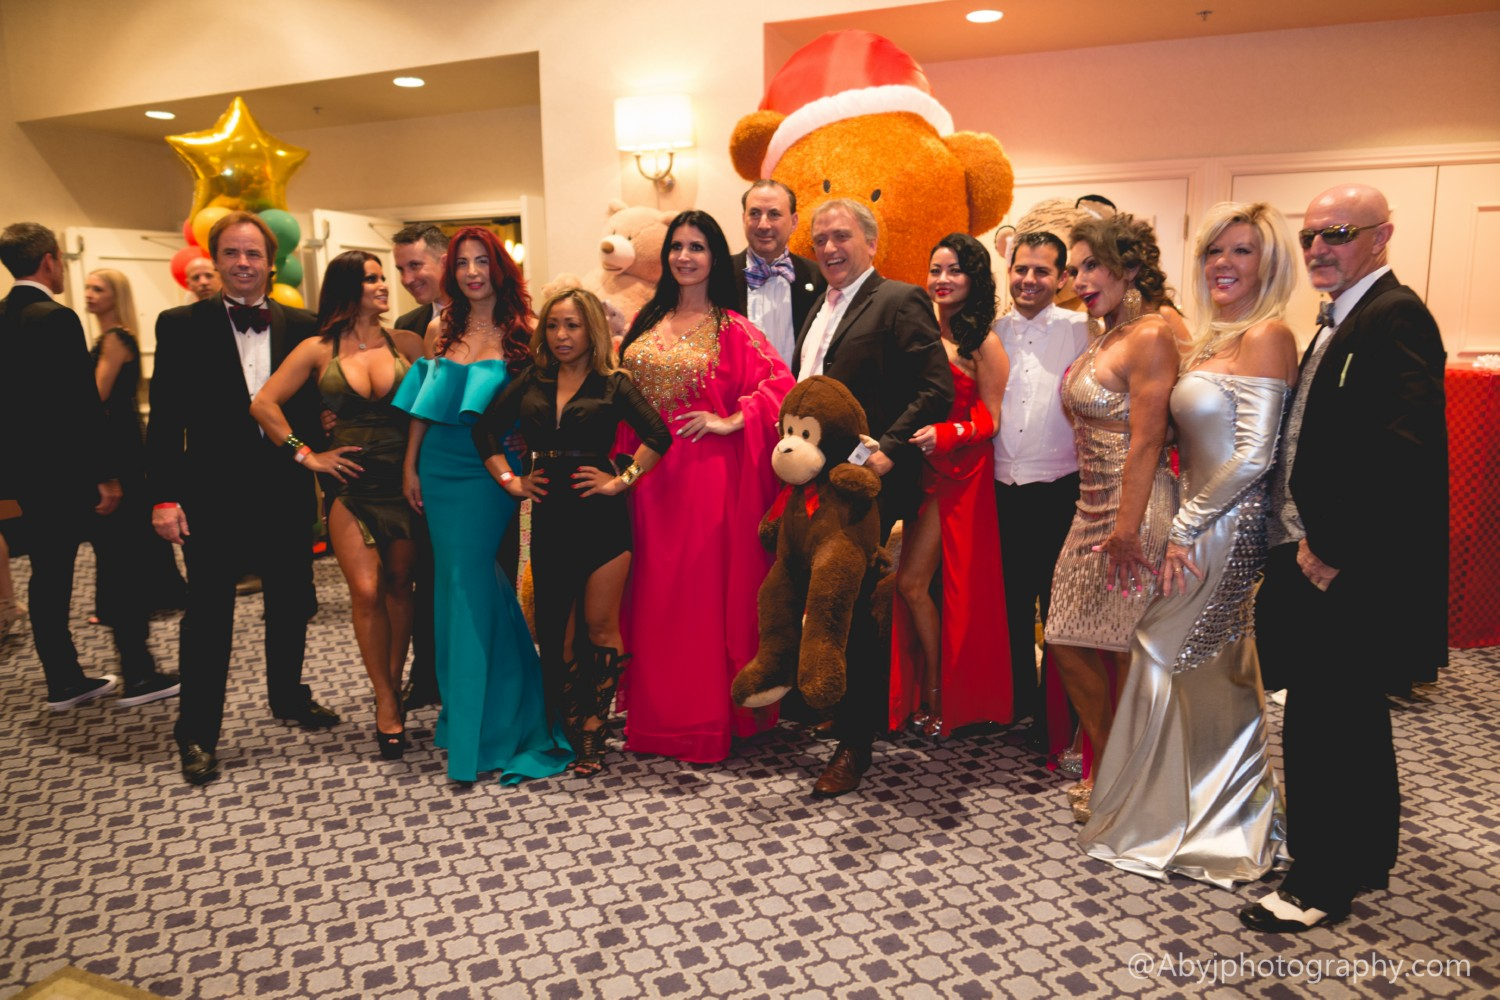 ABYJ_Photography_2016_Teddy_Ball - 335.jpg